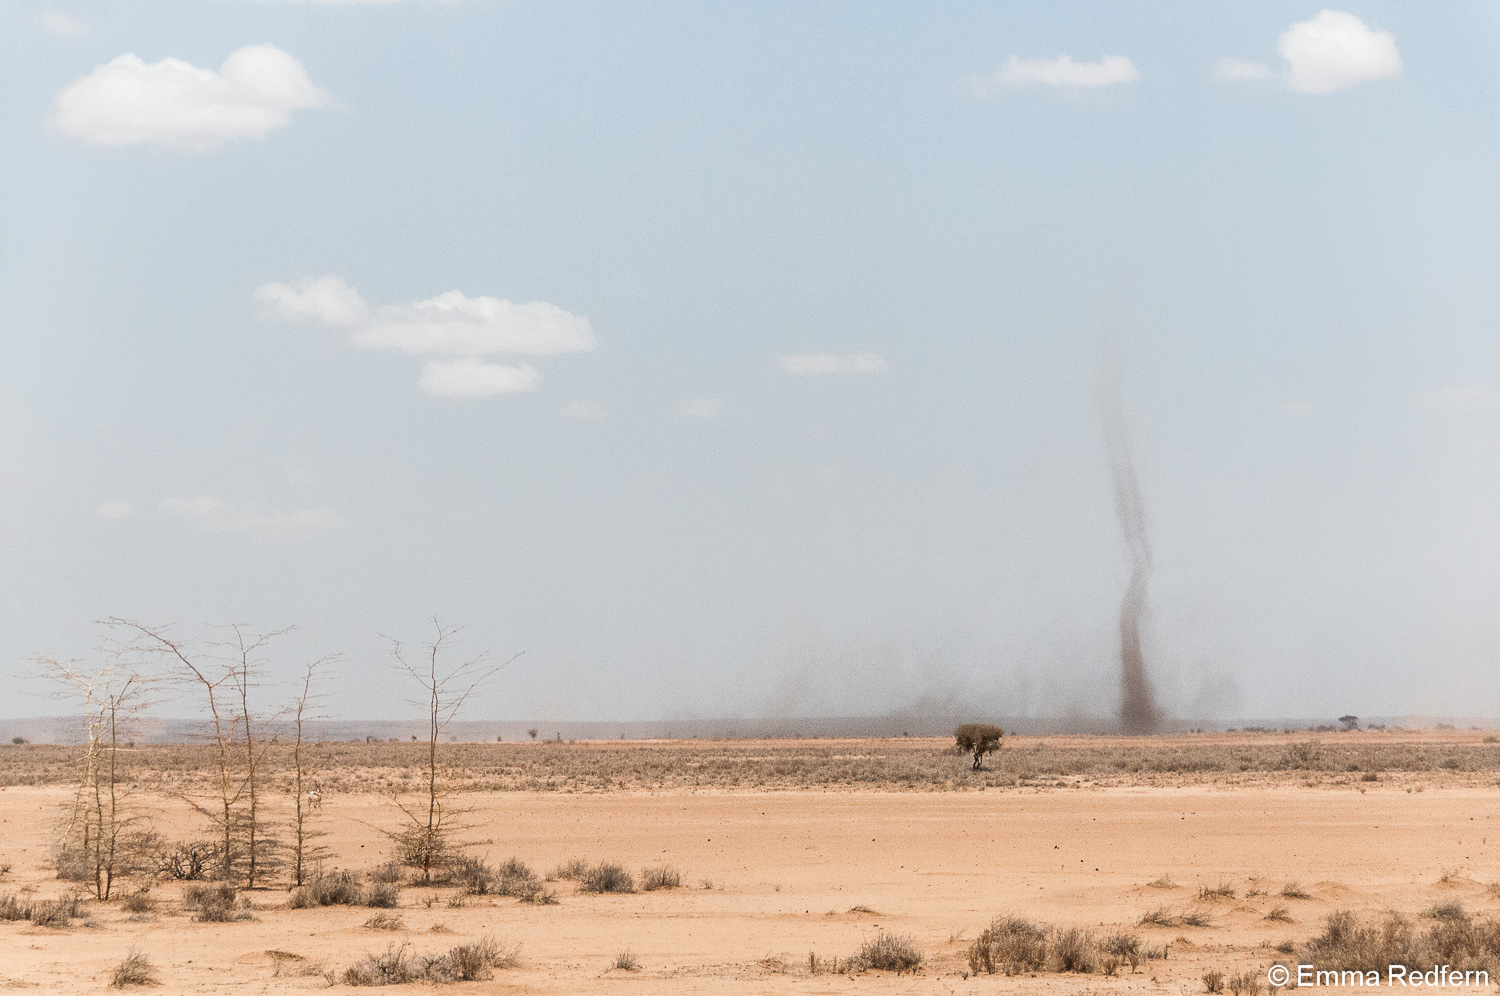 Dust devil just after Laisamis